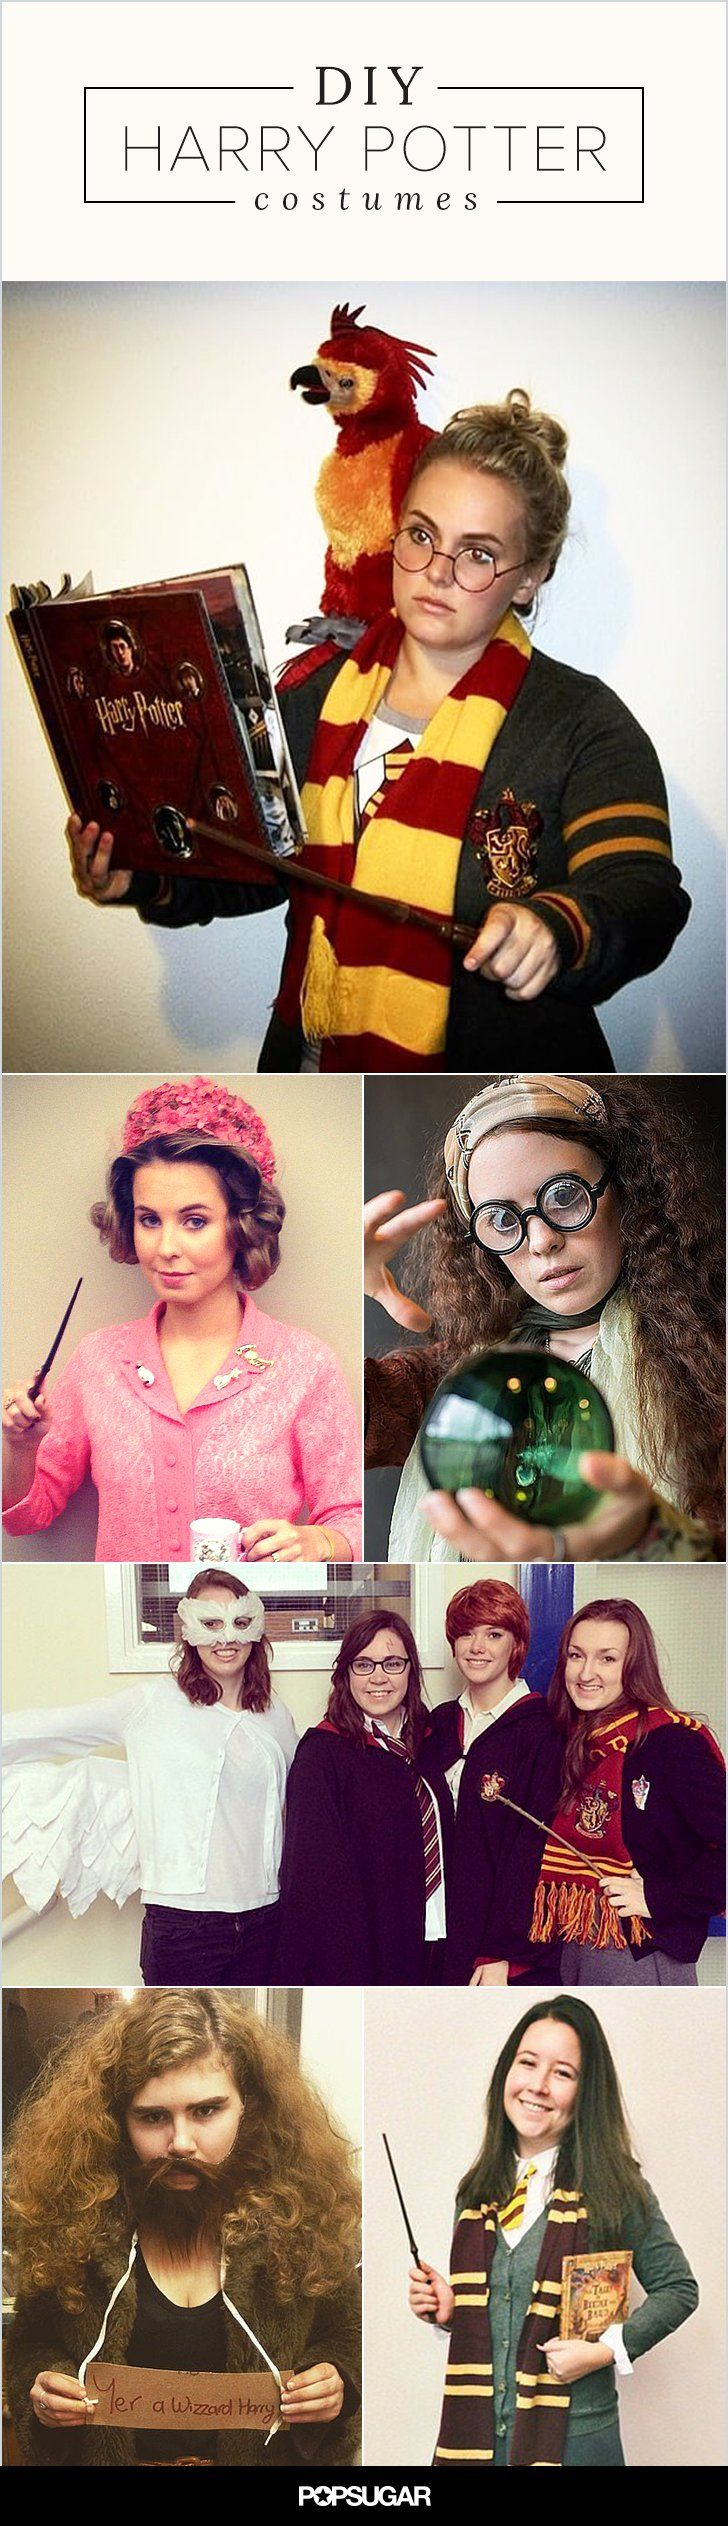 66 DIY Harry Potter Halloween Costumes For the Wizards at Heart